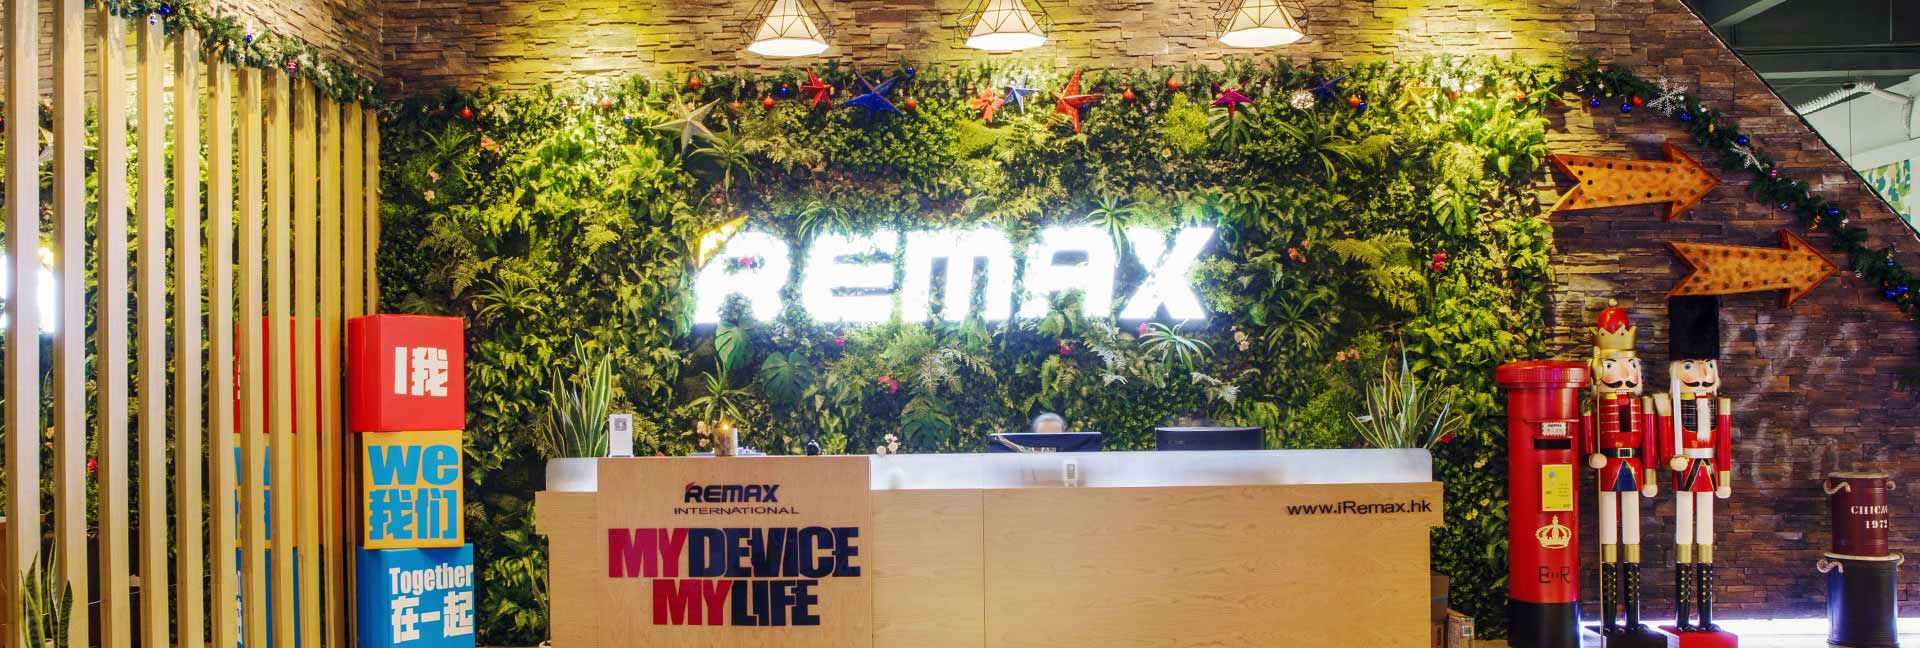 Remax My Device My Life